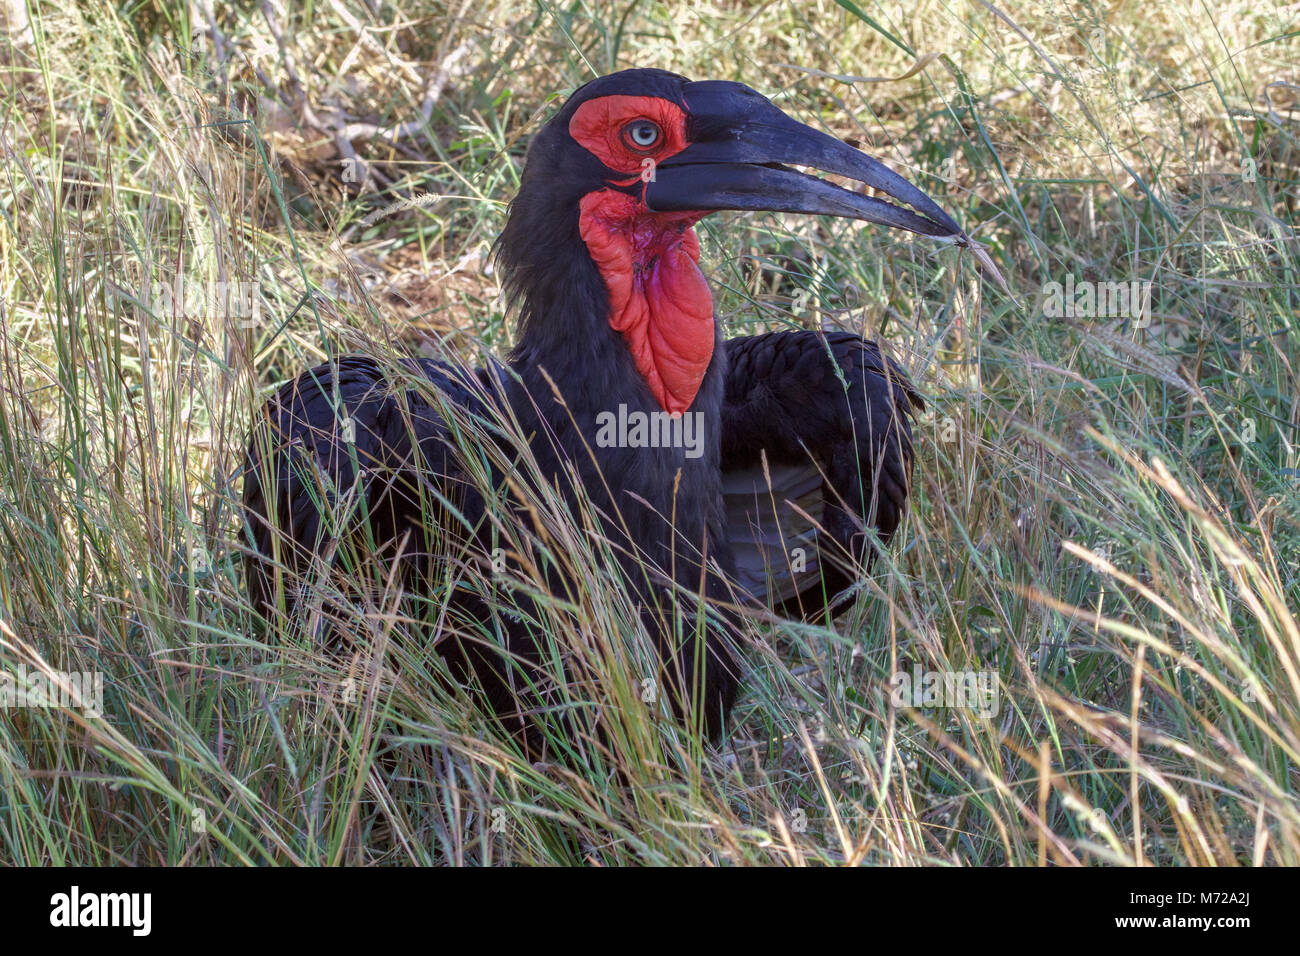 a groung hornbill in the Kruger National Park South Africa - Stock Image